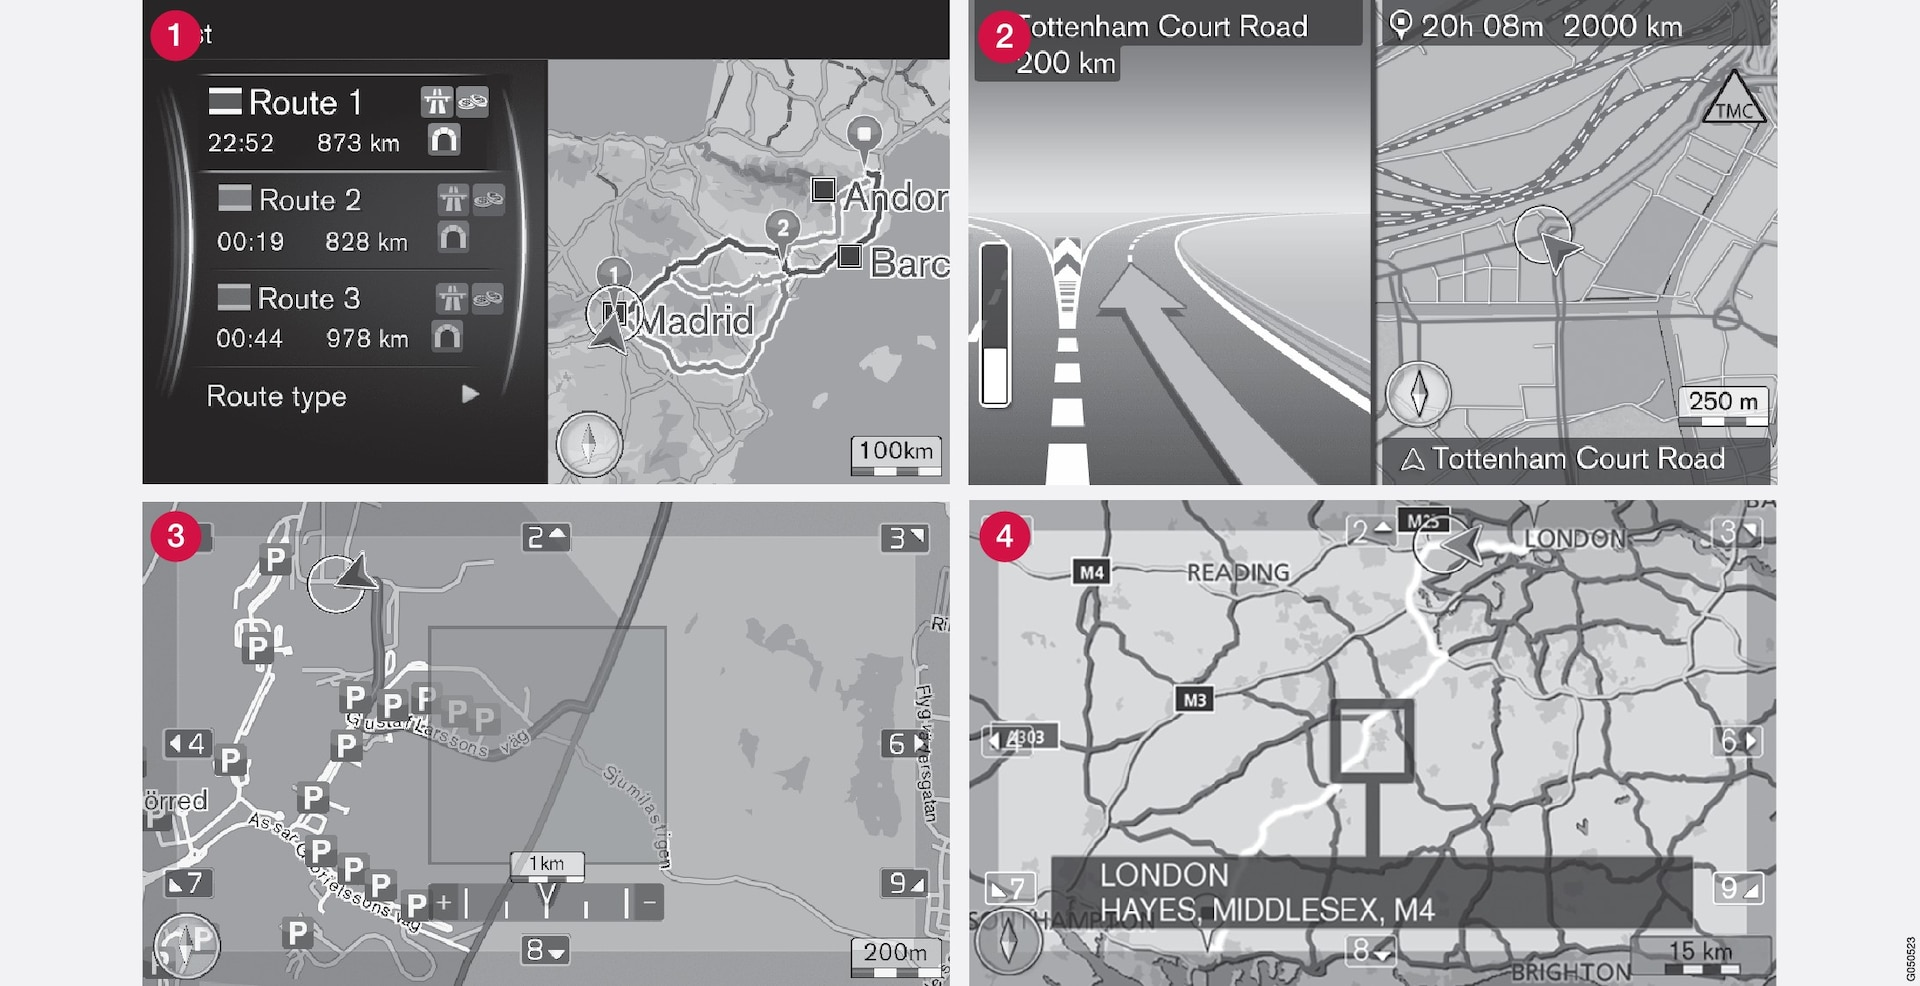 Examples of map images for the current position. Itinerary, junction map and scroll mode are some of the views the screen can show. NOTE: the illustrations are schematic - details may vary depending on software version and market.